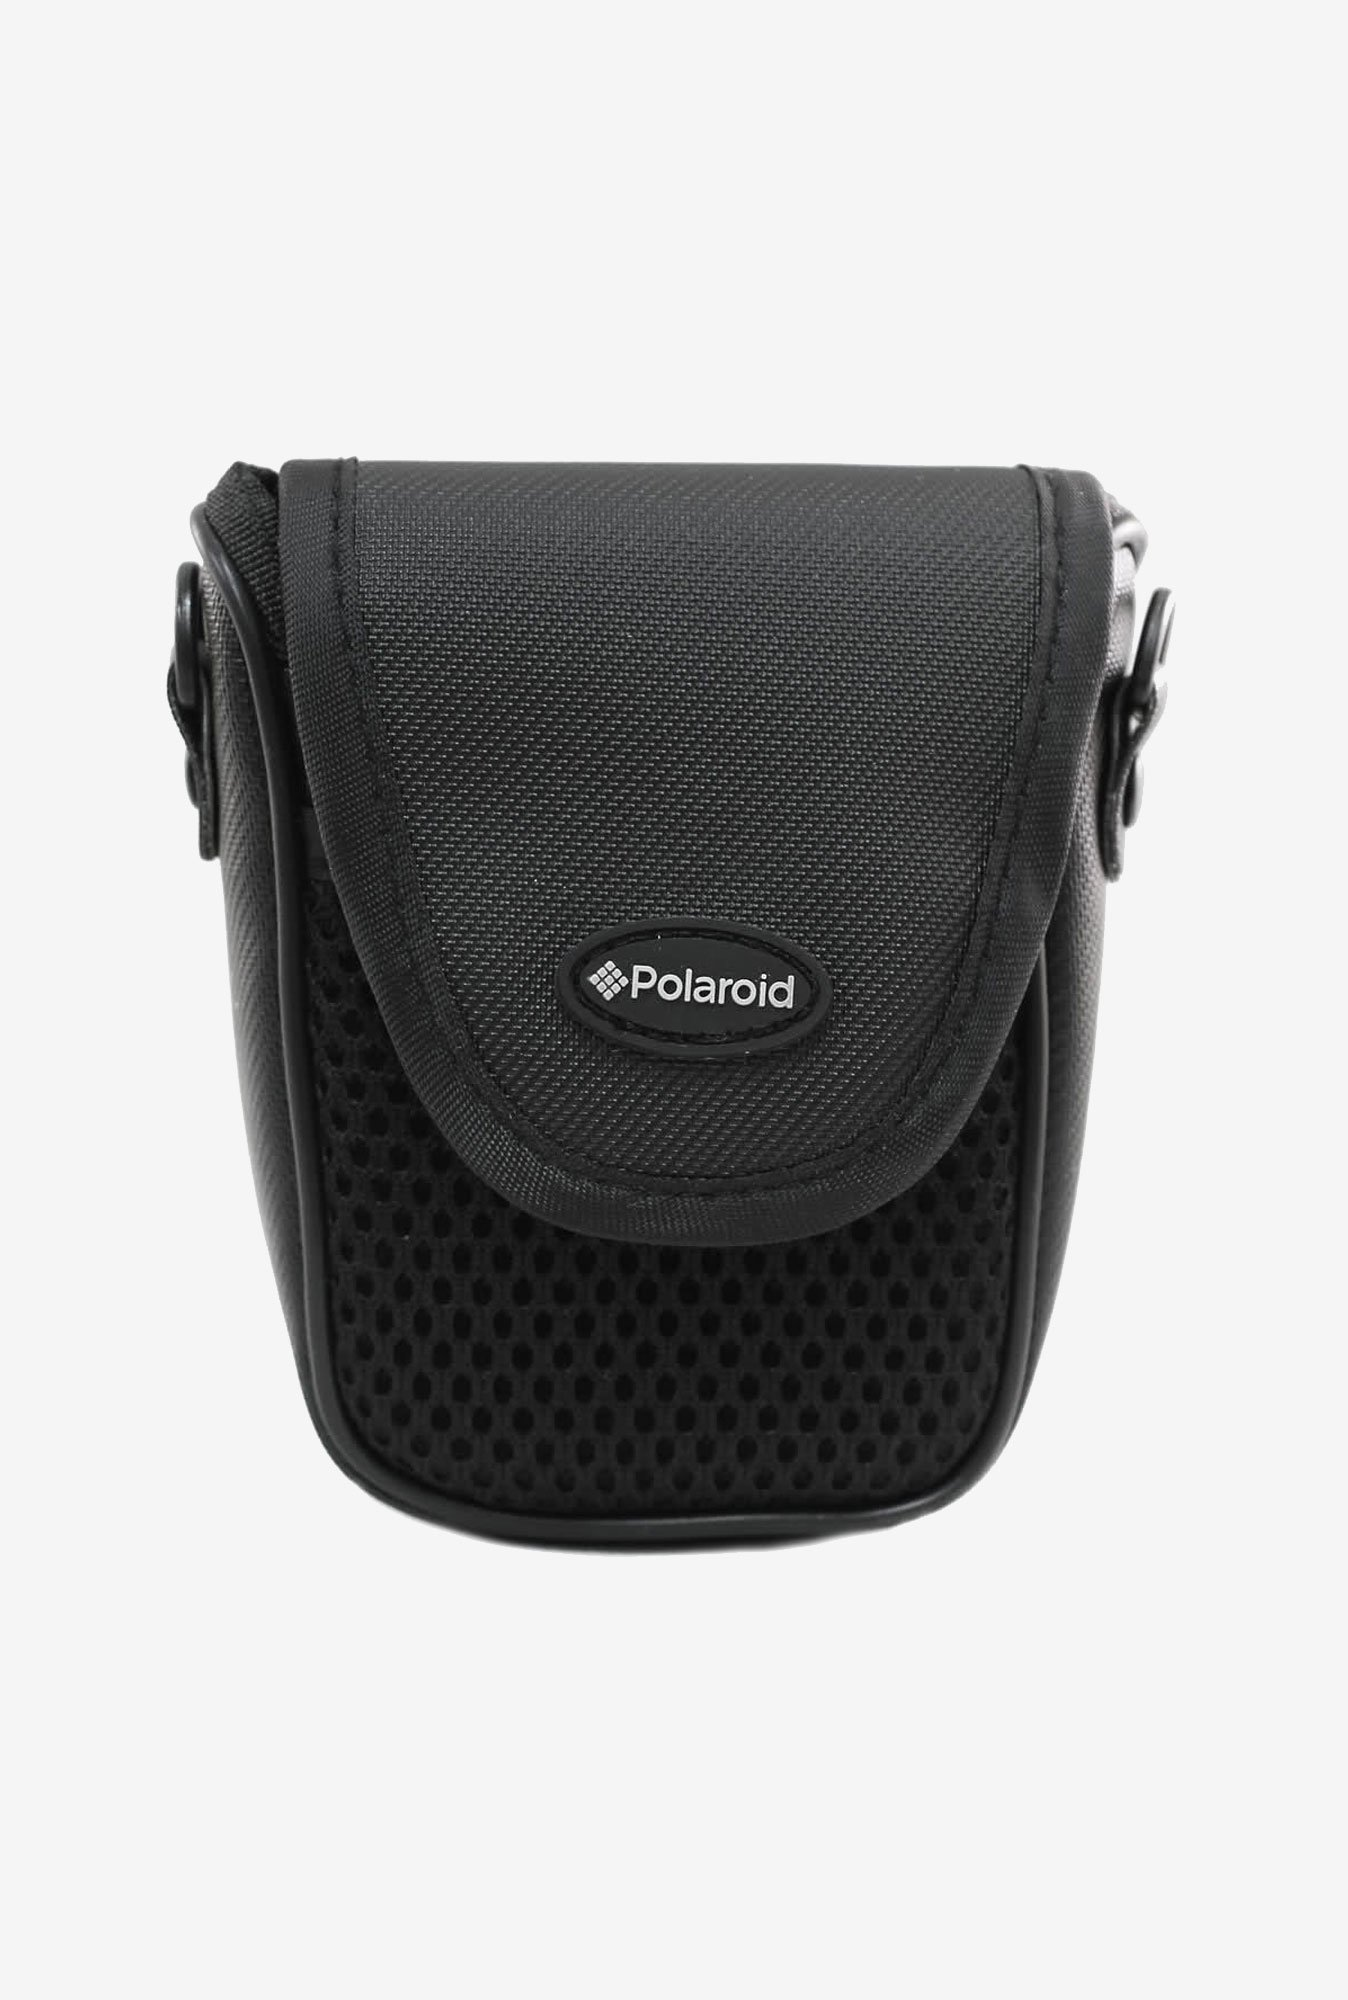 Polaroid PL-CSM18 Studio Series Camera Case (Black)